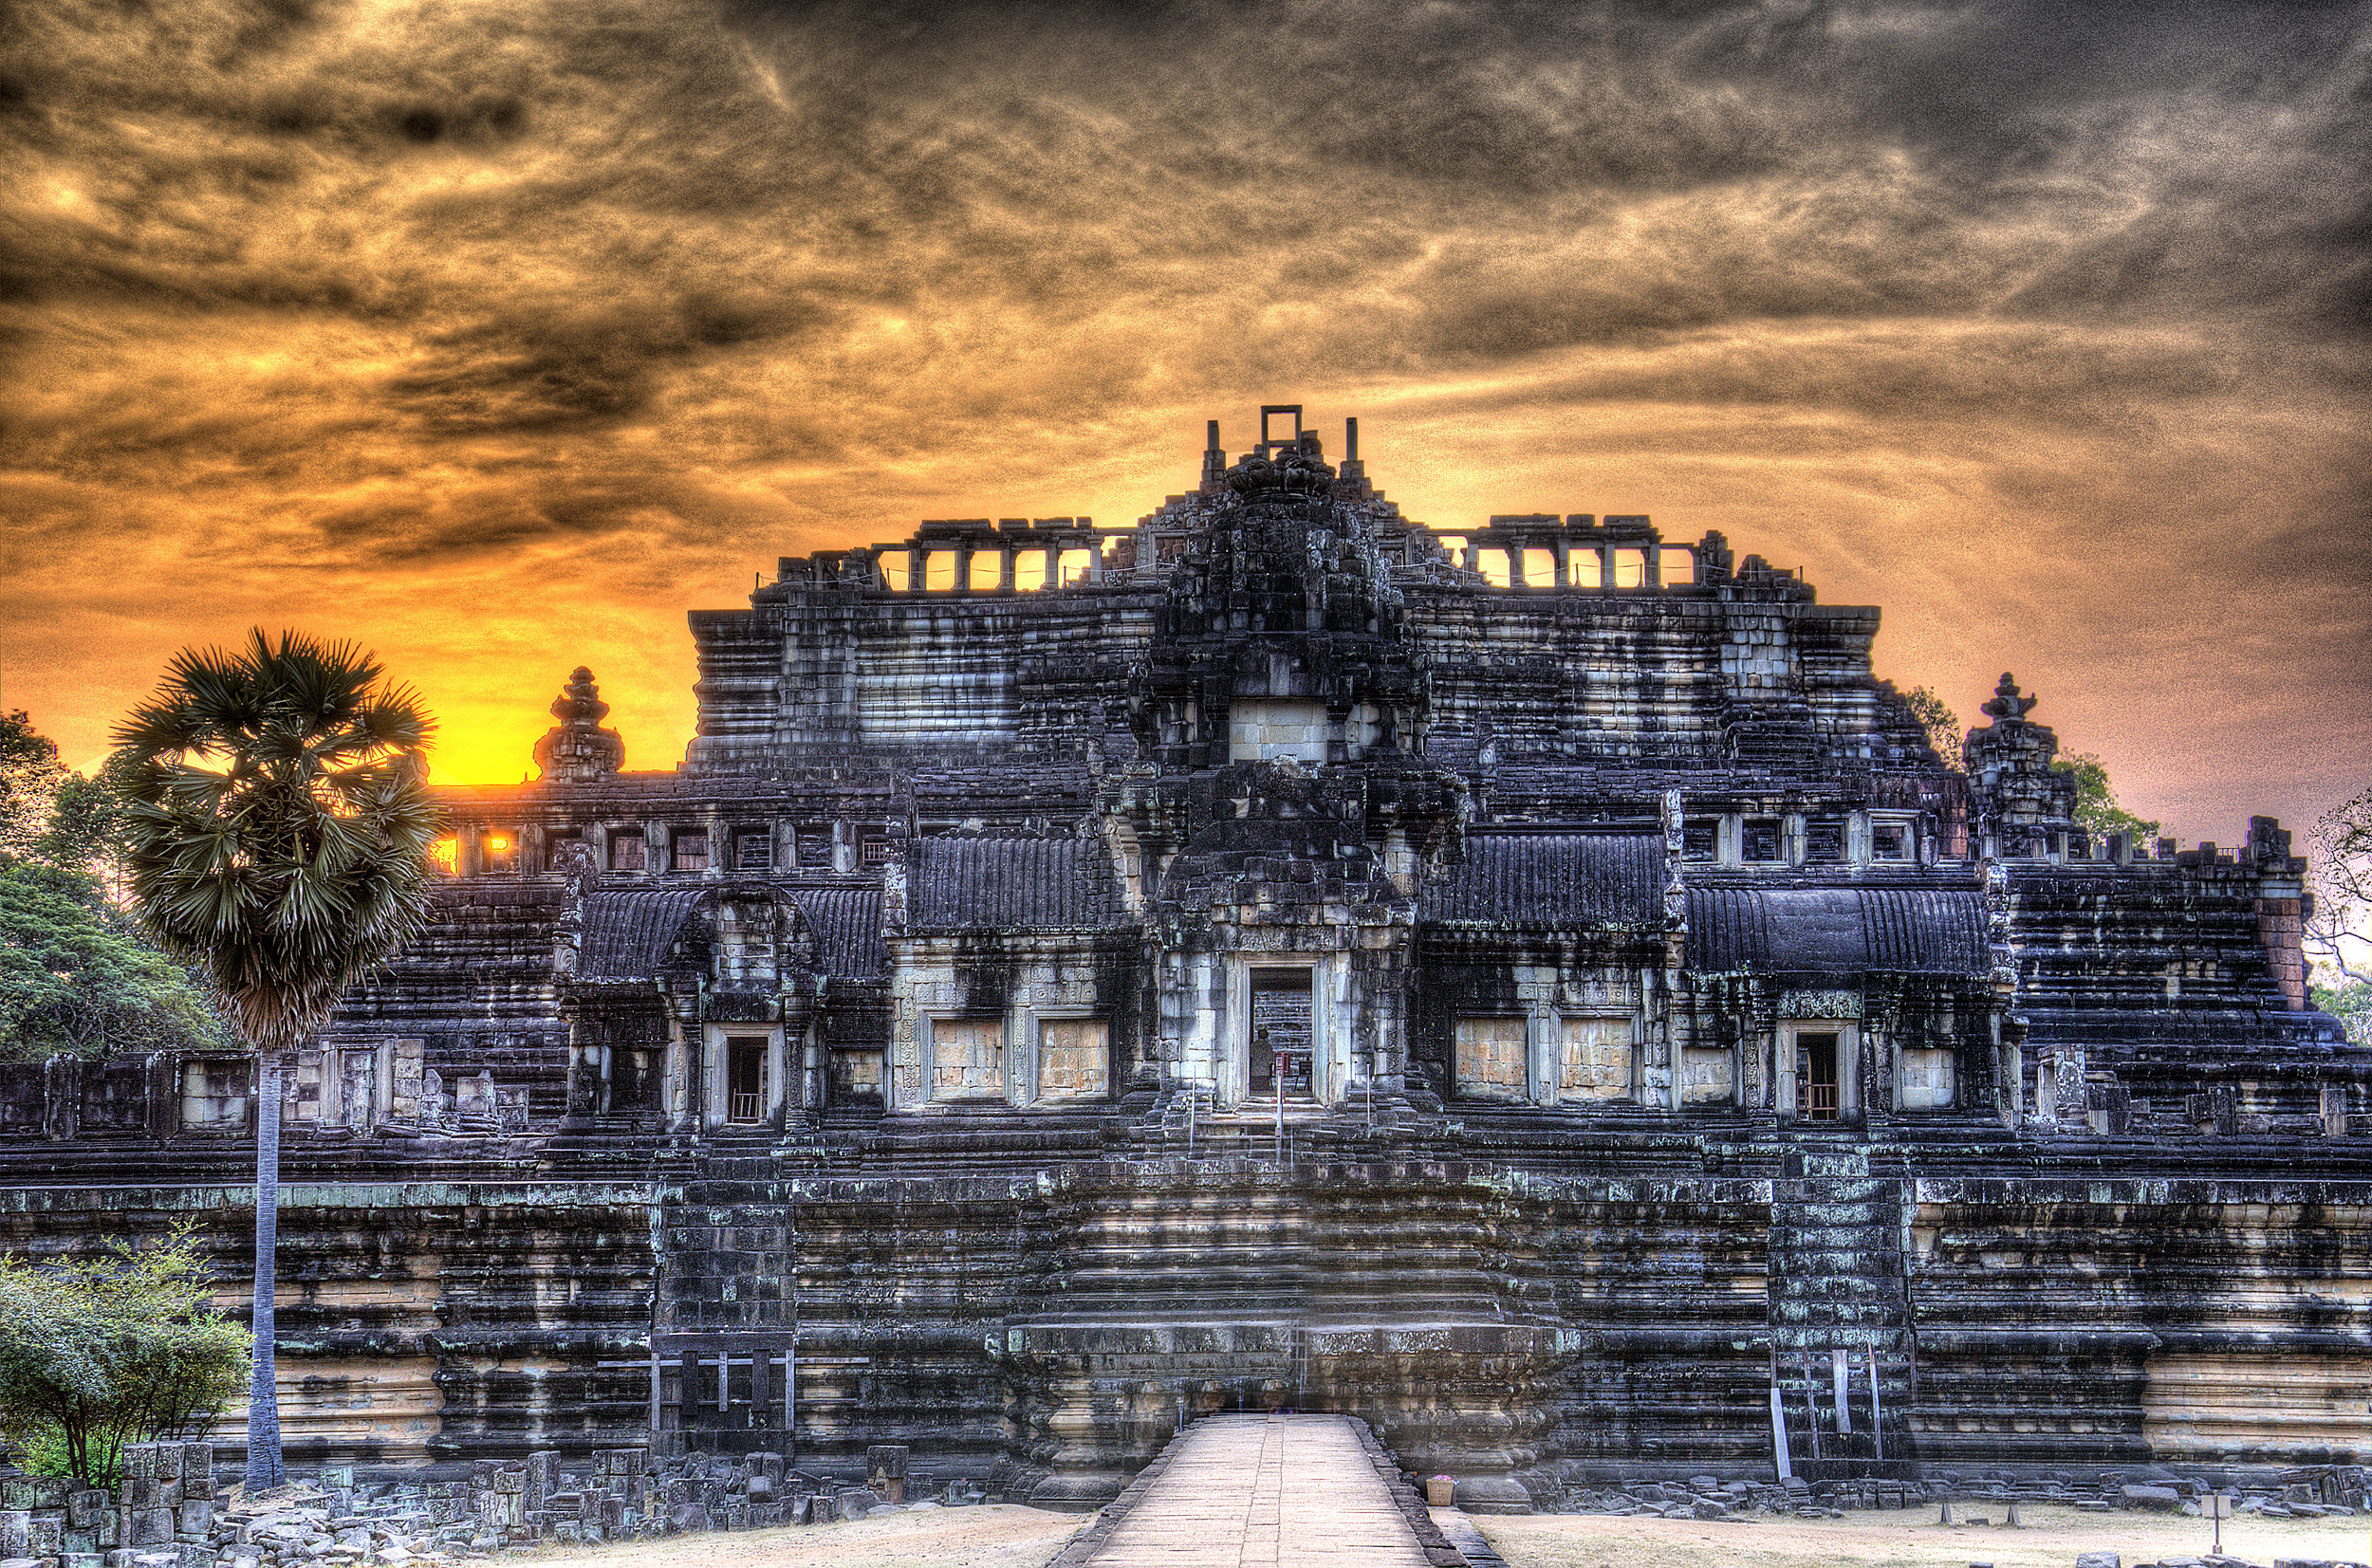 Sunset at Baphuon, Angkor Thom, Siem Riep; the king's personal temple.